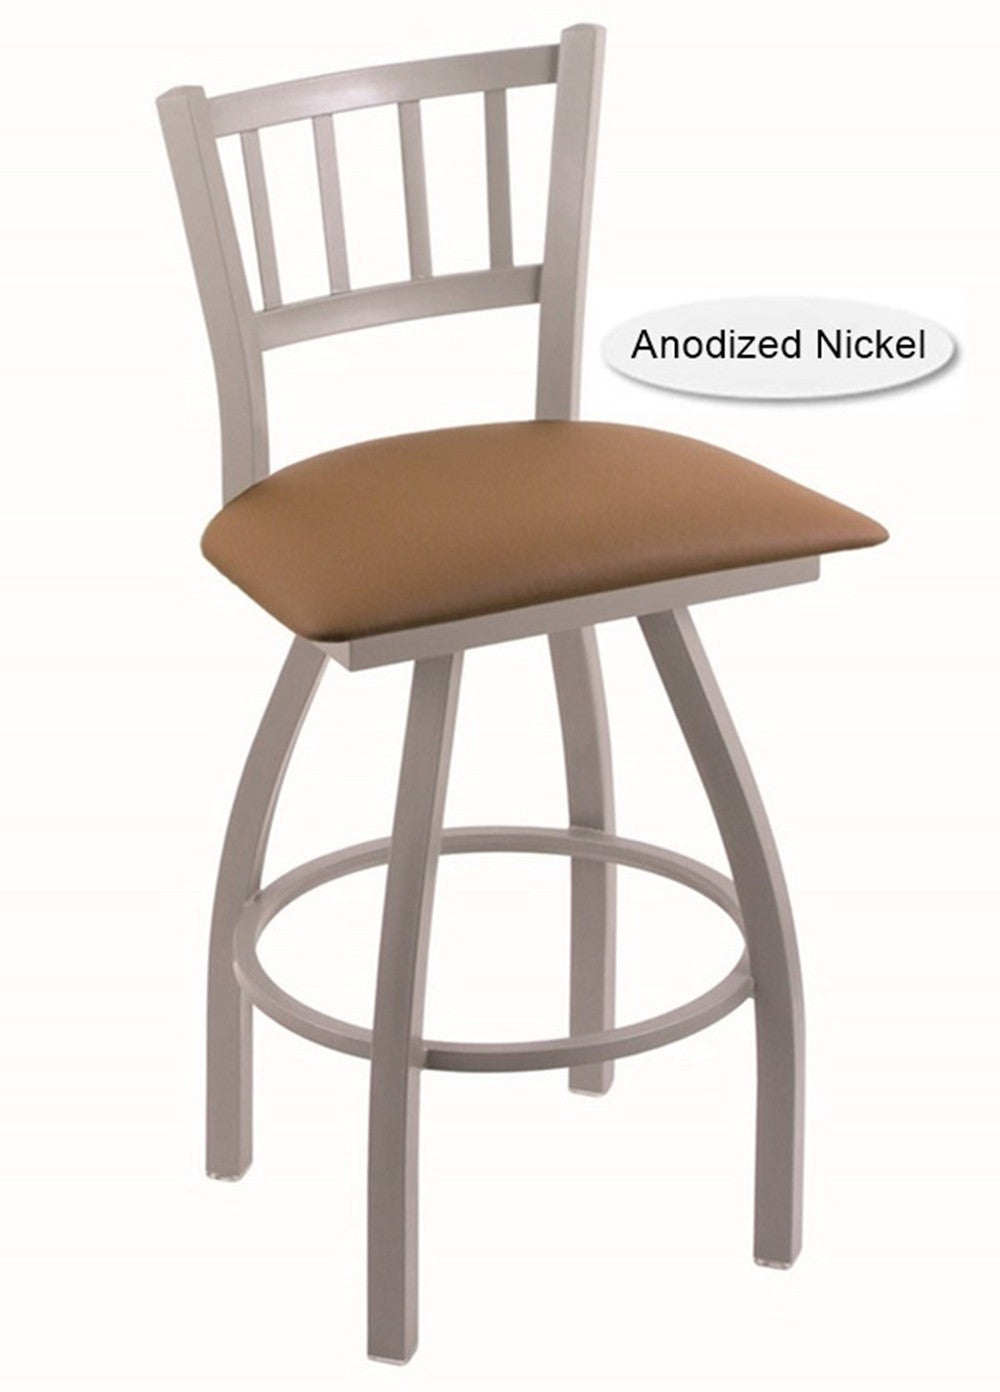 Big and Tall XL Anondized Nickel Contessa Swivel Bar Stool